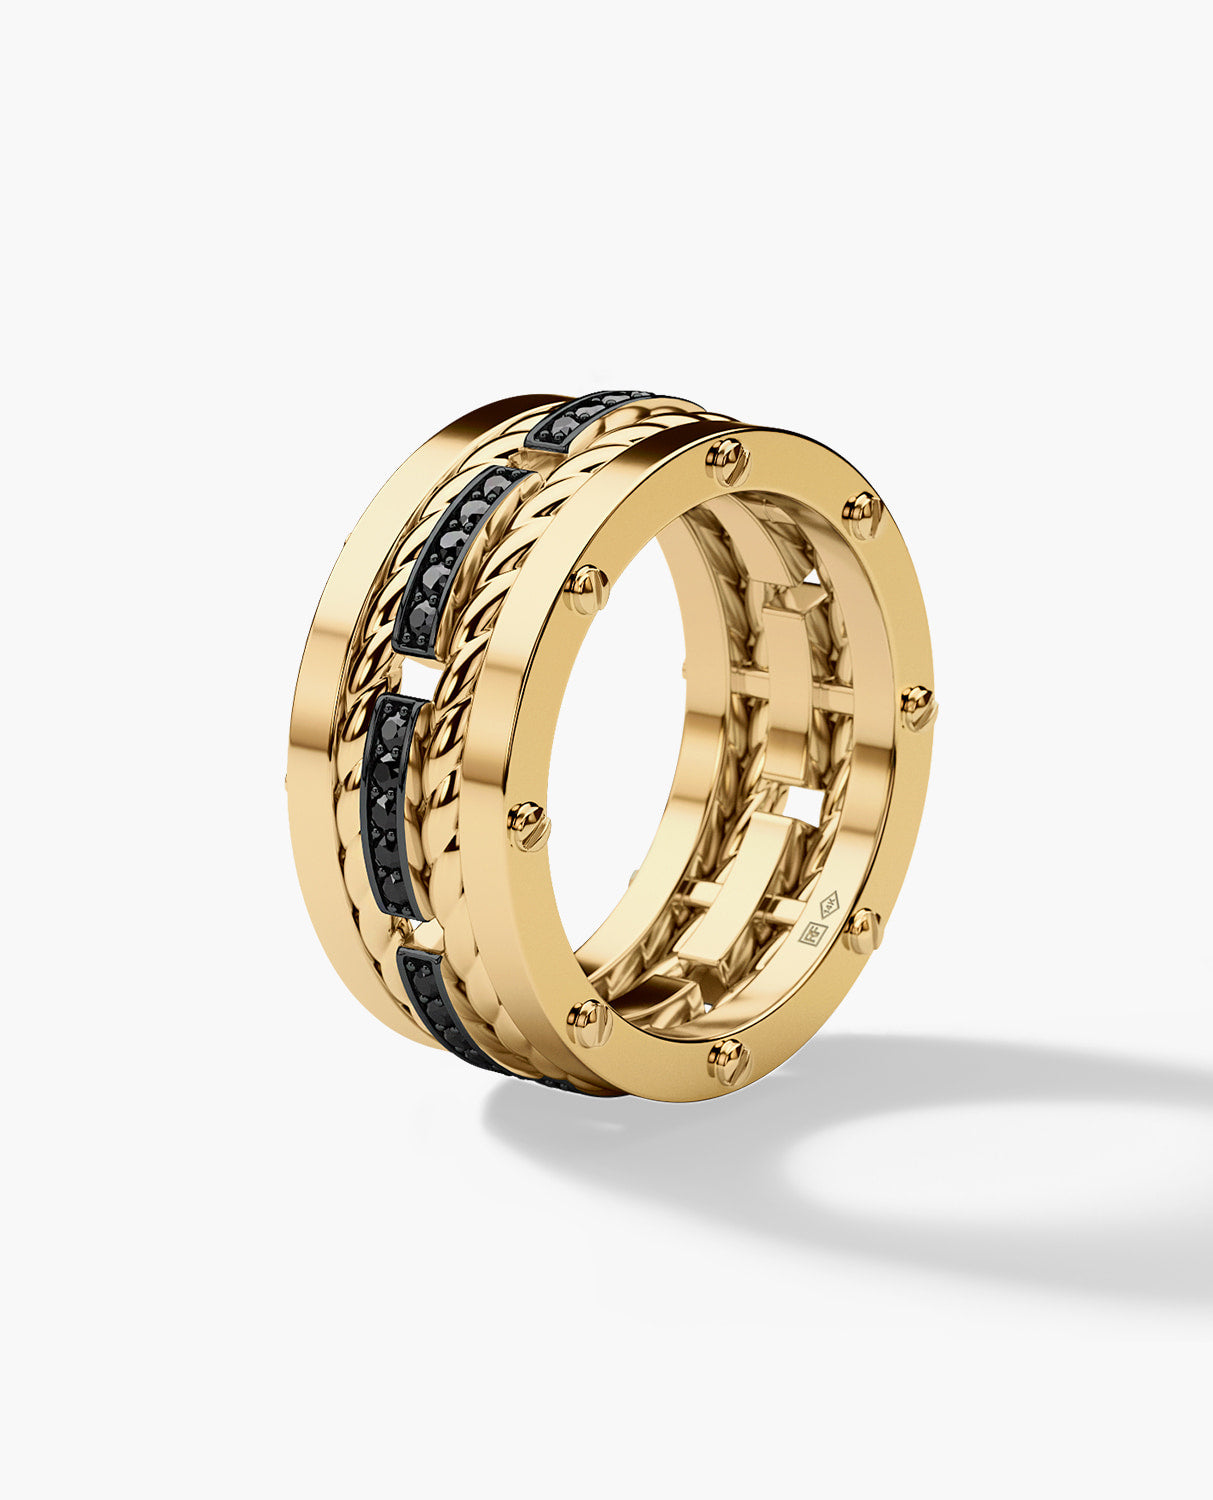 ROPES Mens Gold Wedding Band with Black Diamonds